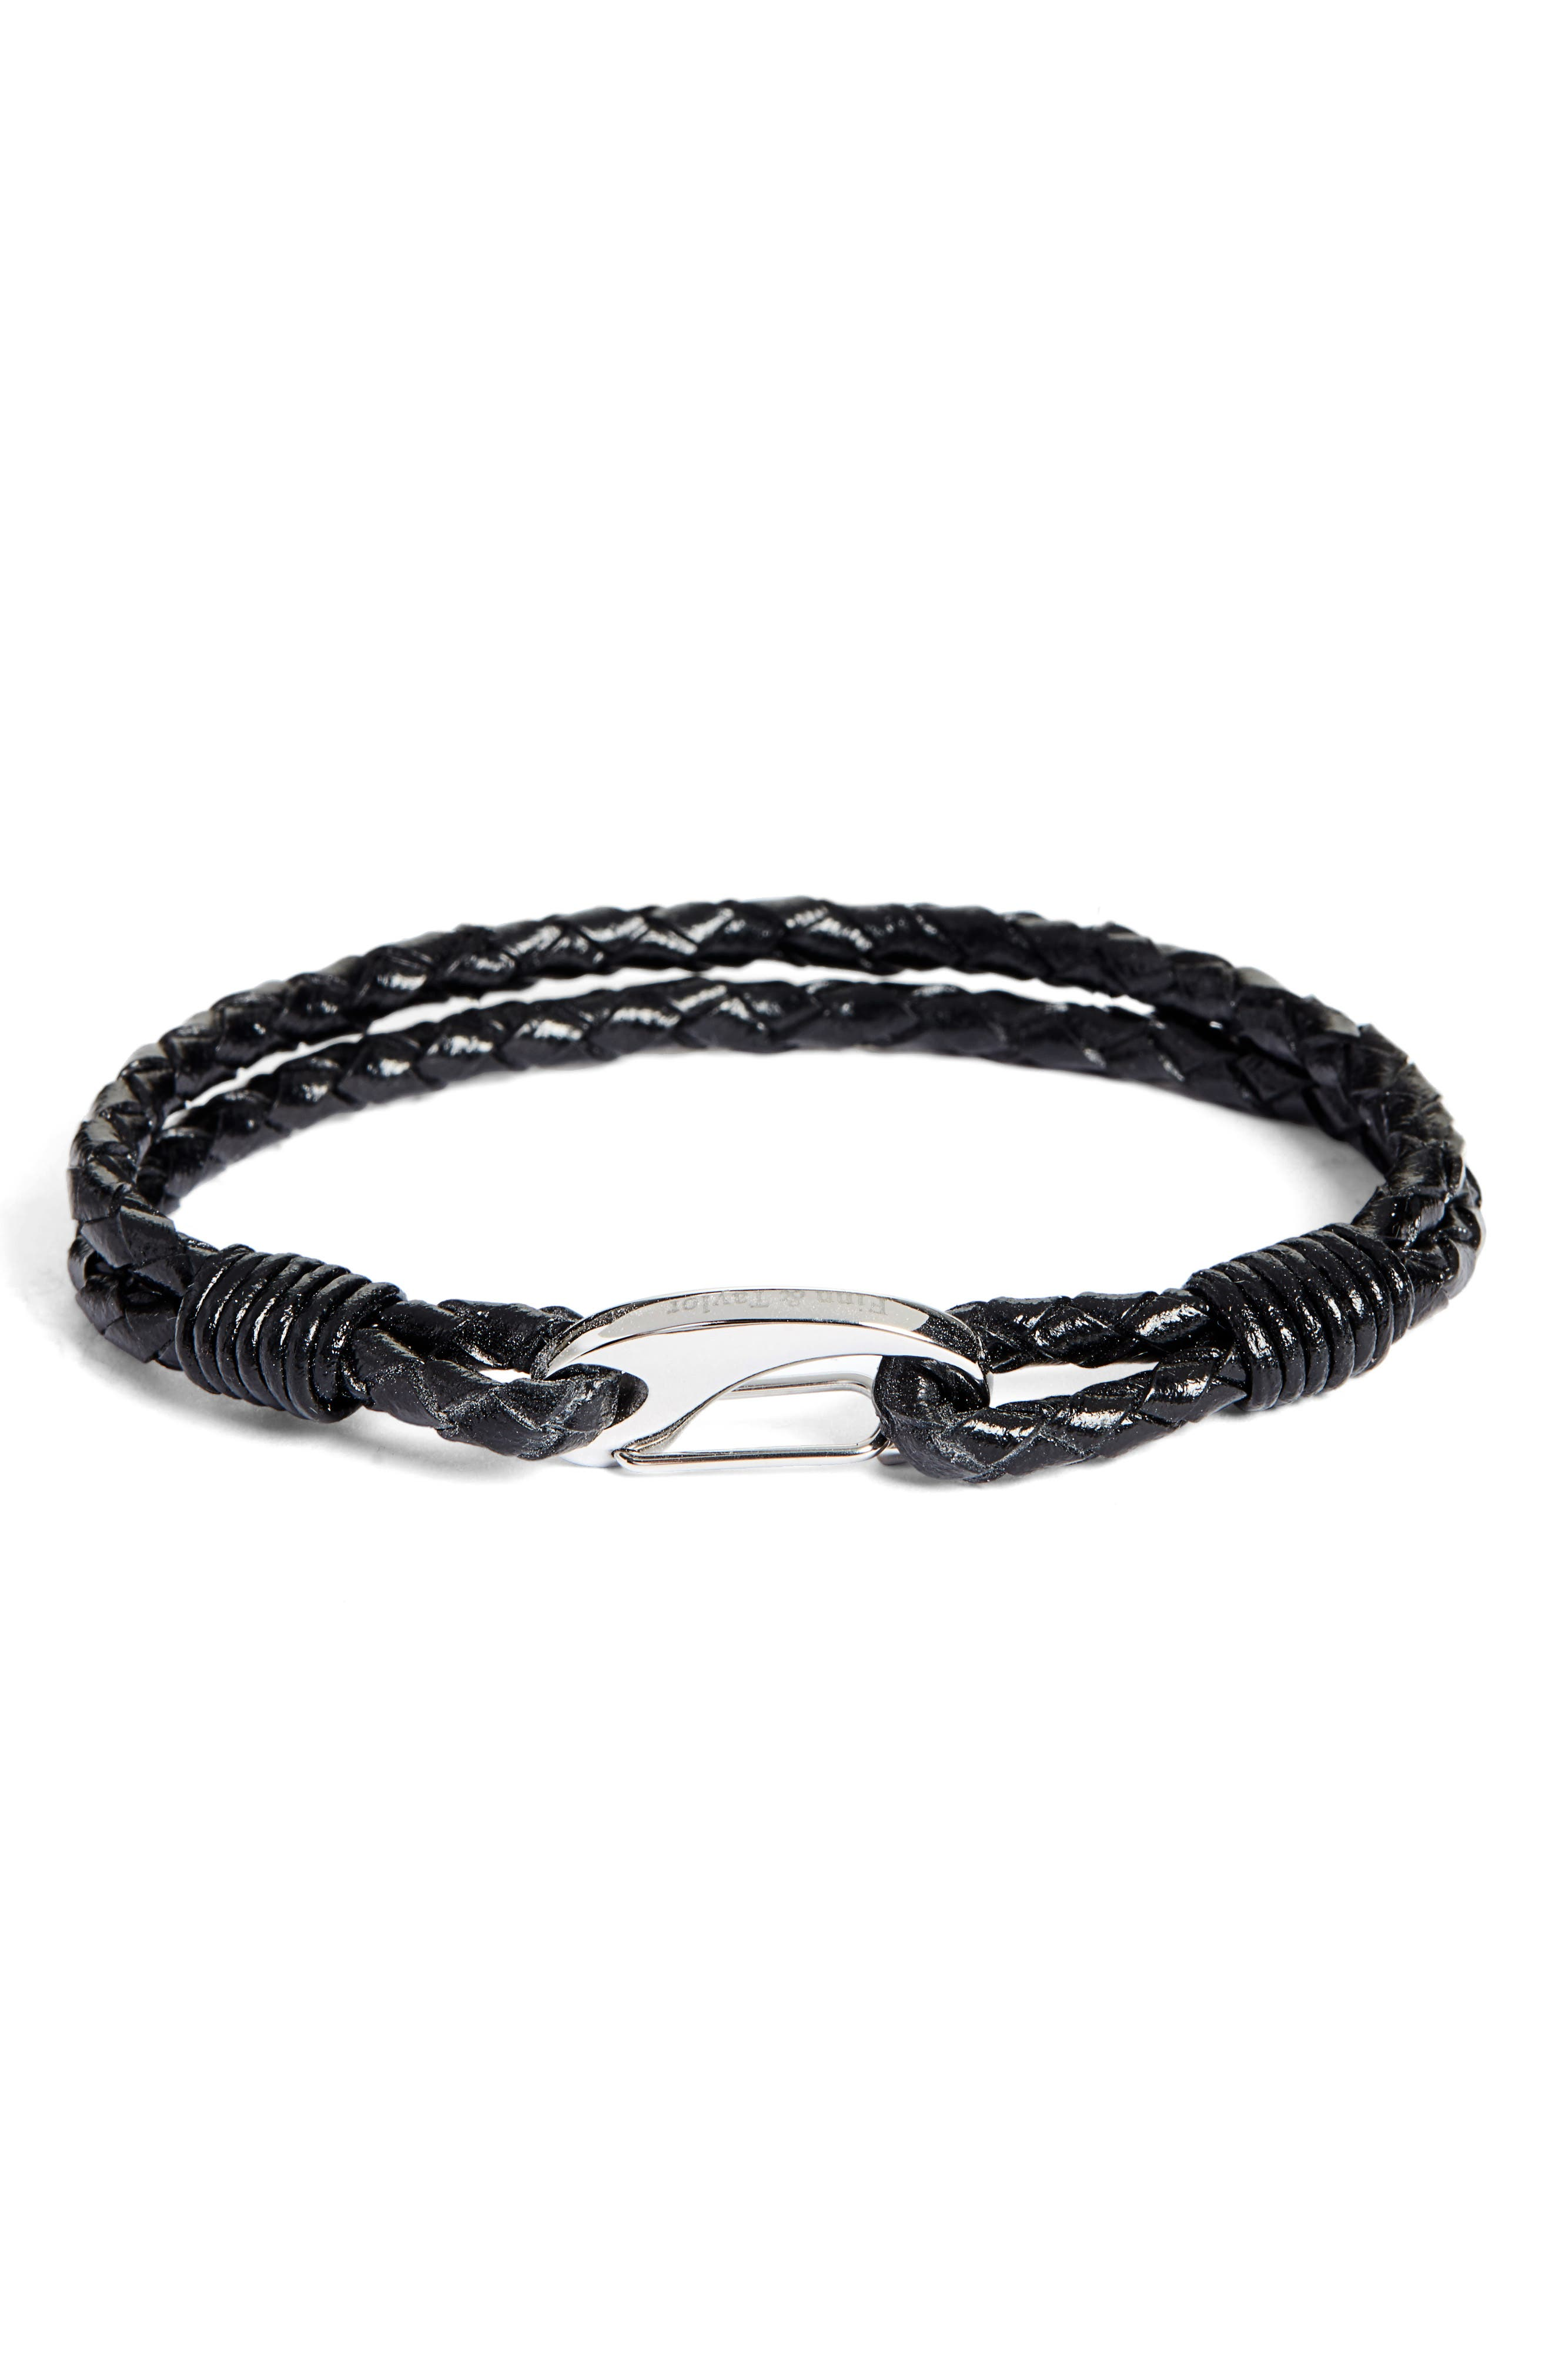 Braided Leather Bracelet,                             Main thumbnail 1, color,                             002